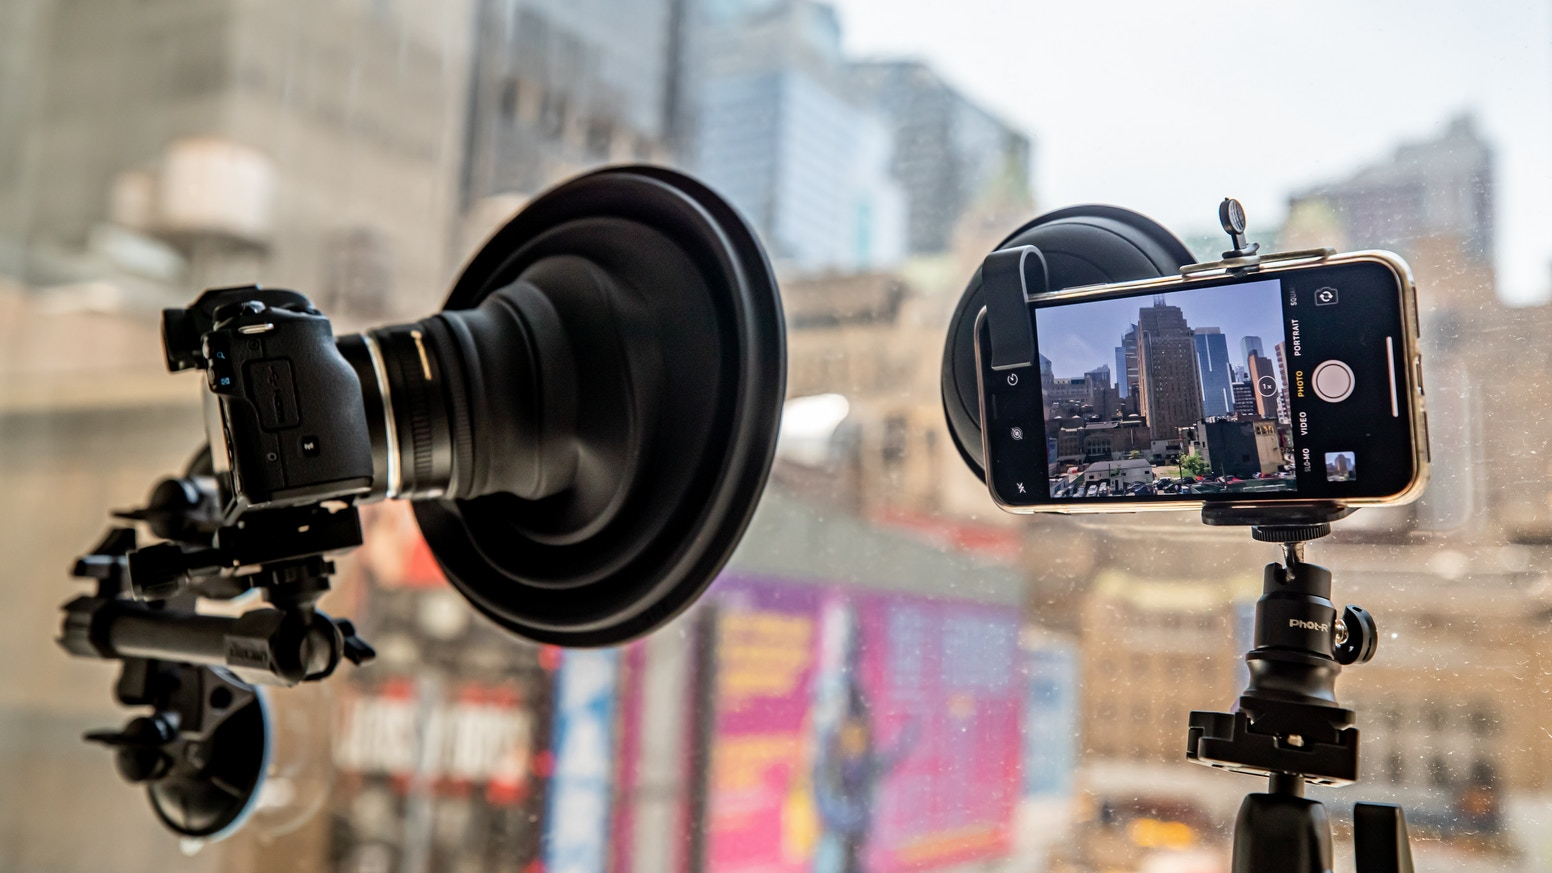 New for 2019, take reflection free photos, videos & time lapses with your smartphone and the ULHmobile! + ULHgo for DSLR & Mirrorless!